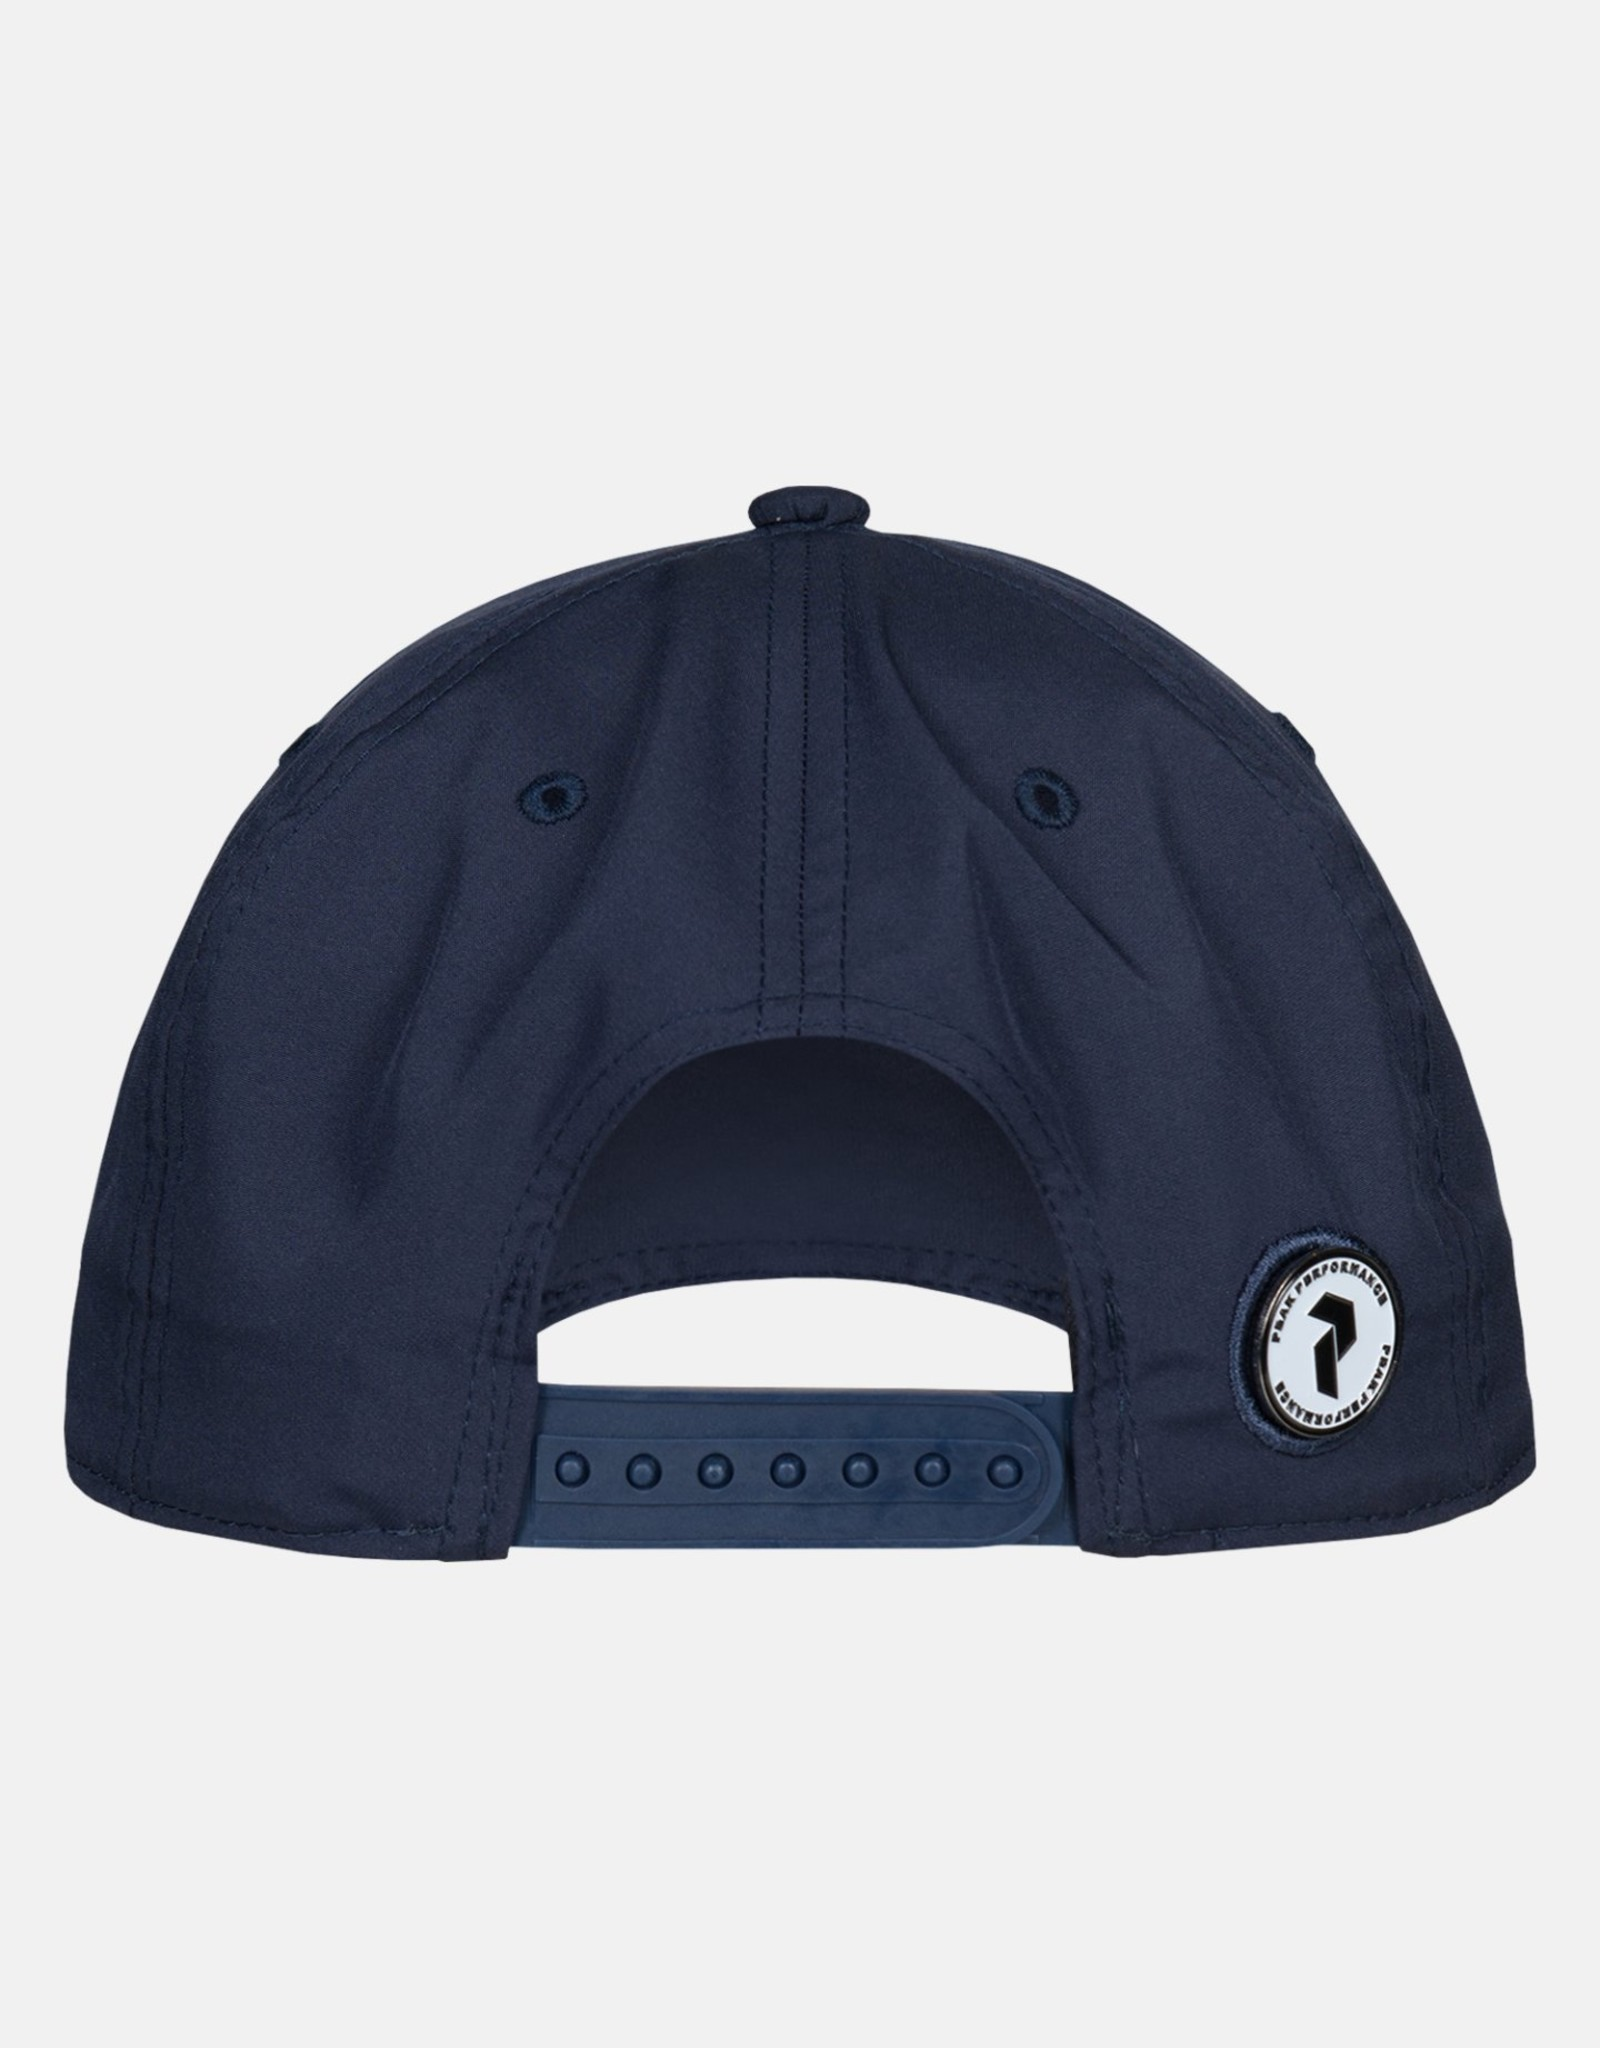 Peak Performance Peak Performance Player Cap - S2020